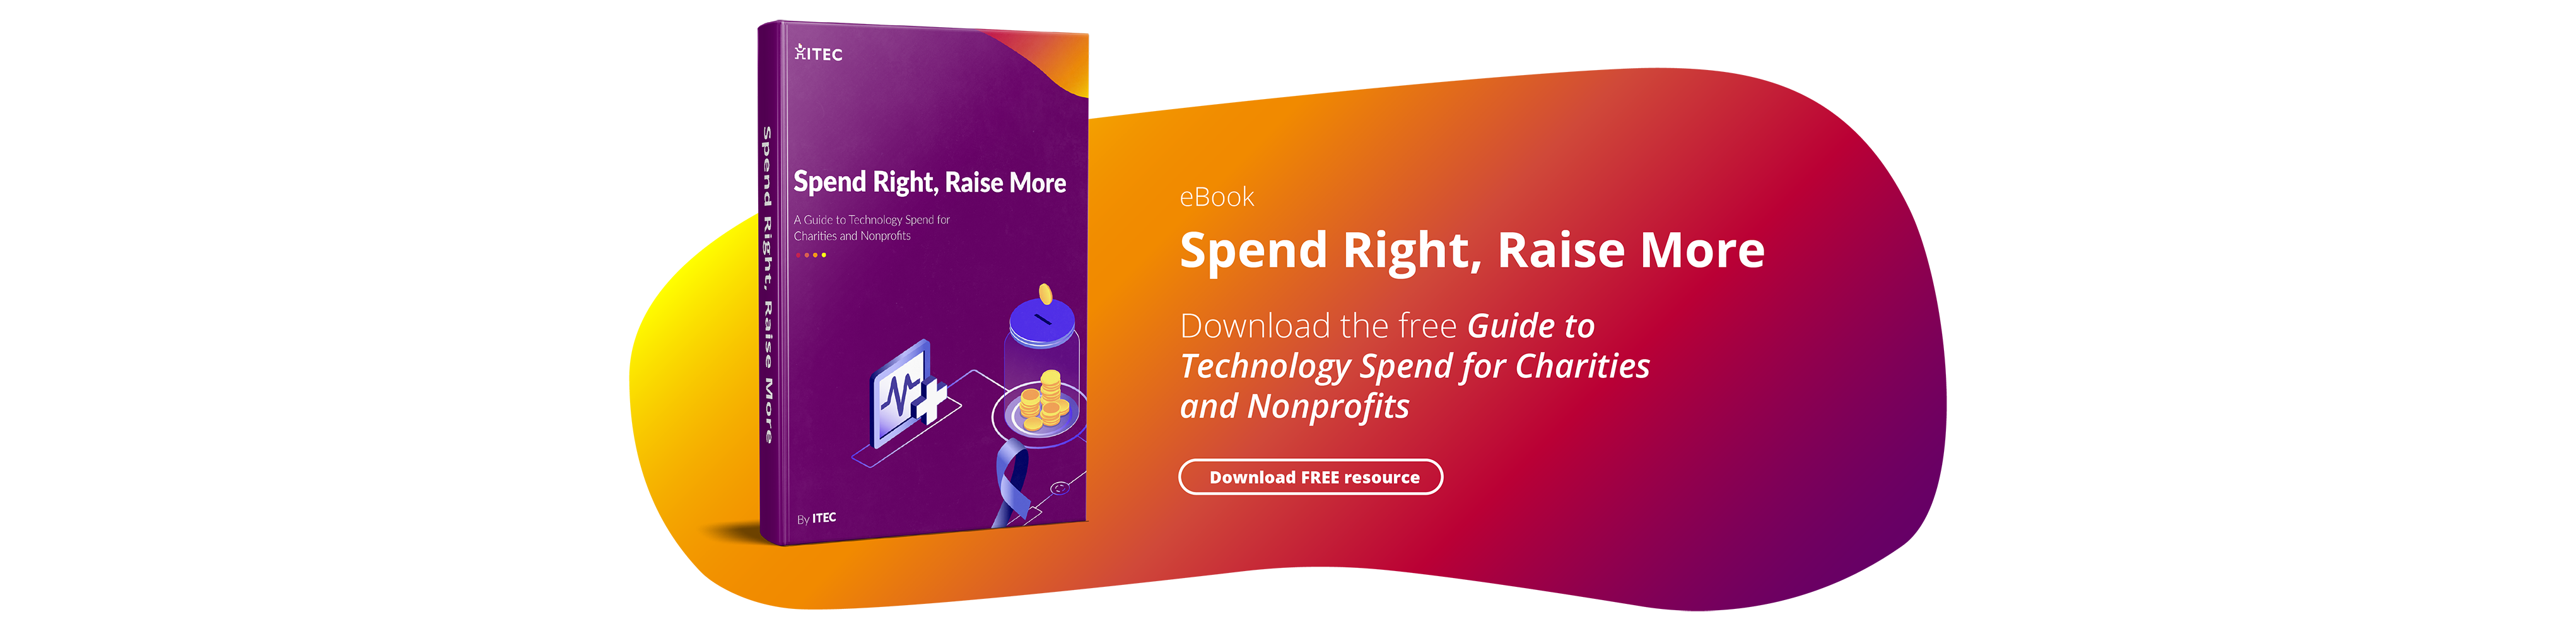 Download the Guide to Technology Spend for Charities